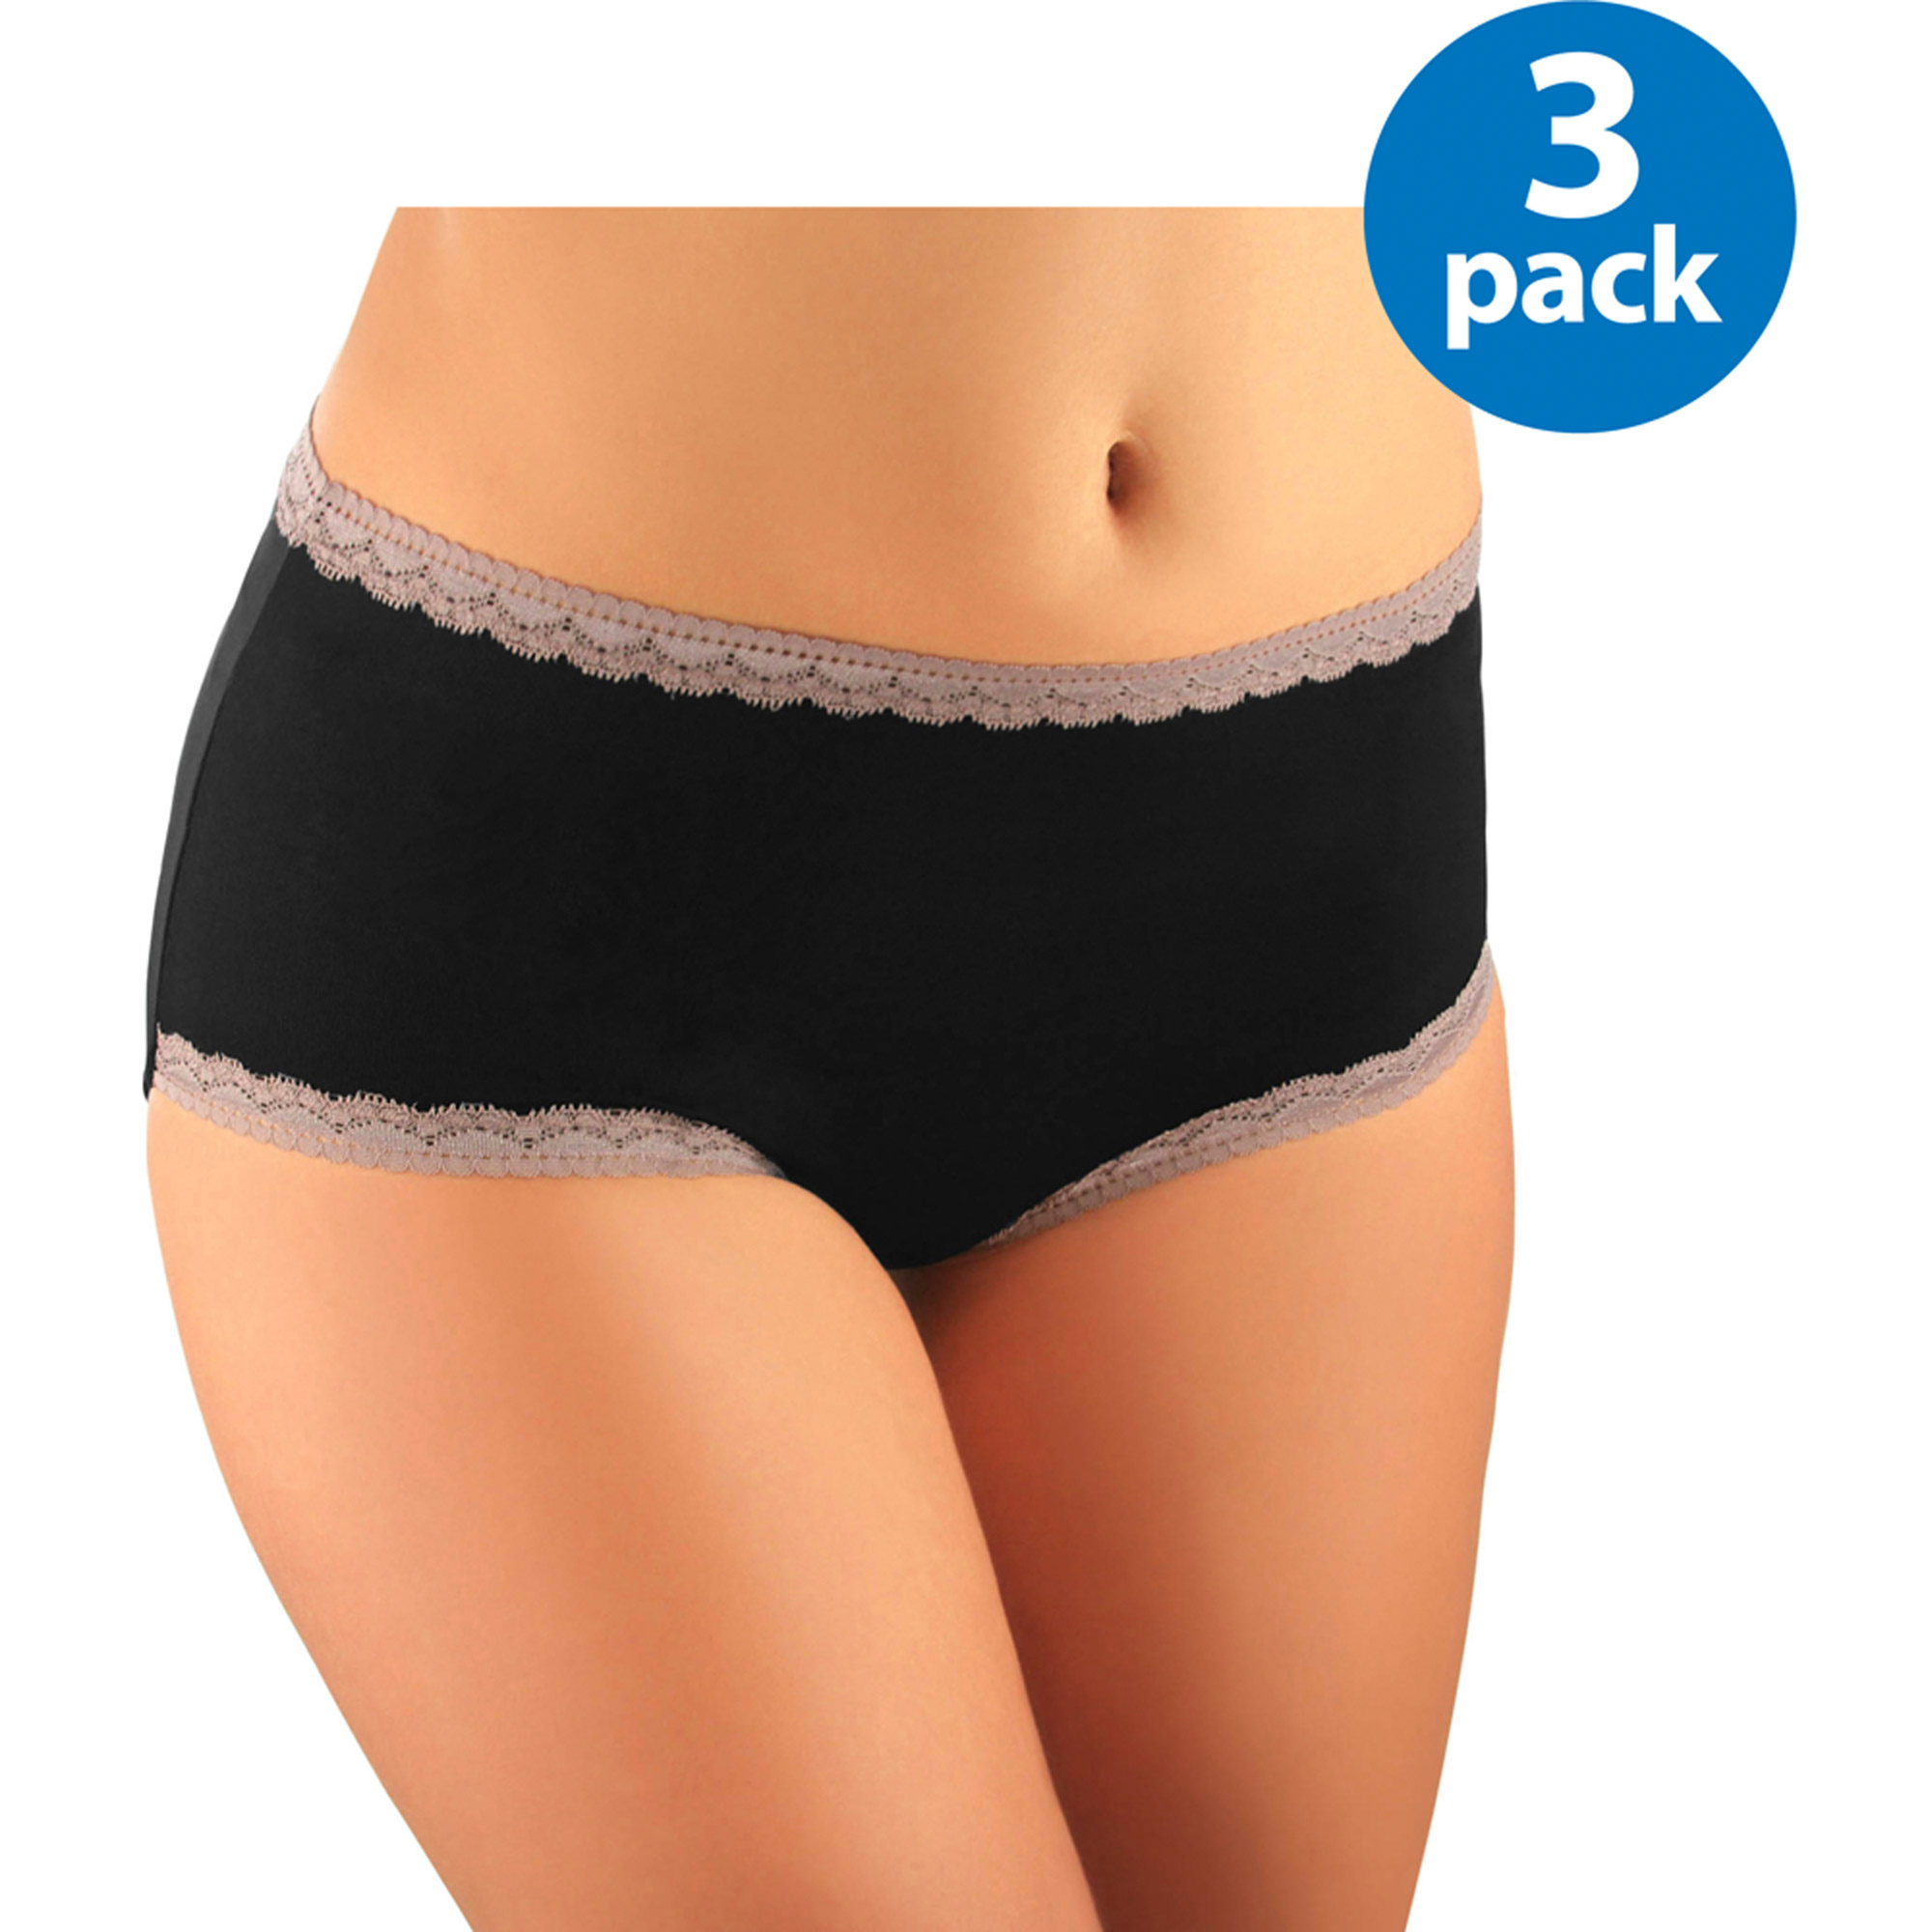 Best Fitting Women's Microfiber w/Lace Brief, 3-Pack